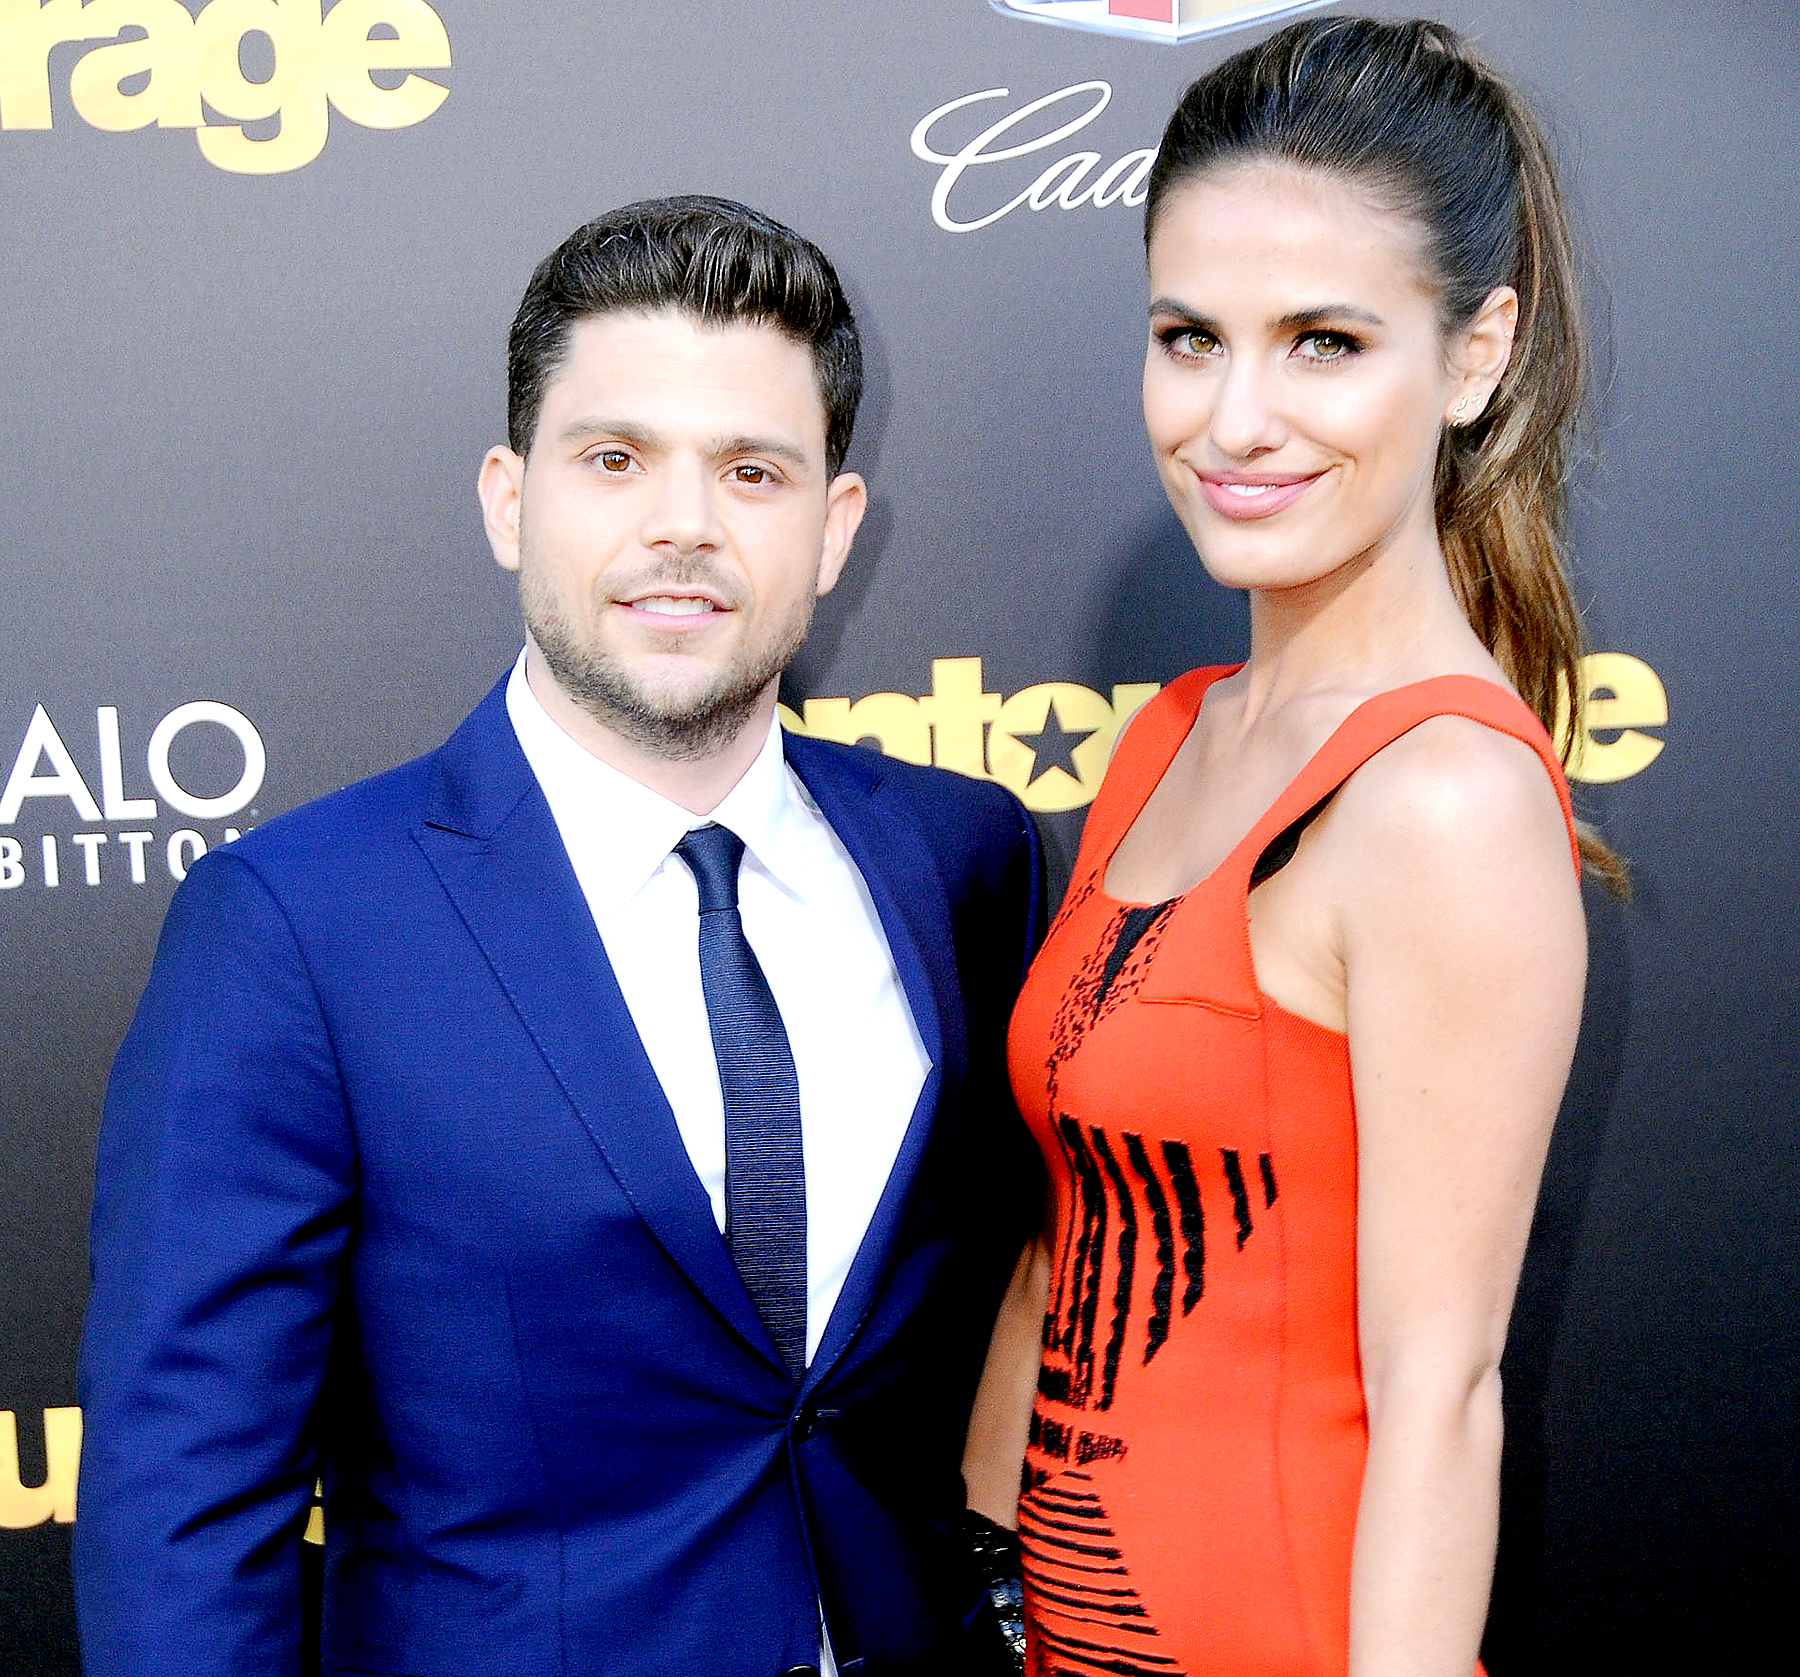 Jerry Ferrara and Breanne Racano arrive at Warner Bros. Pictures Premiere of 'Entourage' at Regency Village Theatre on June 1, 2015 in Westwood, California.